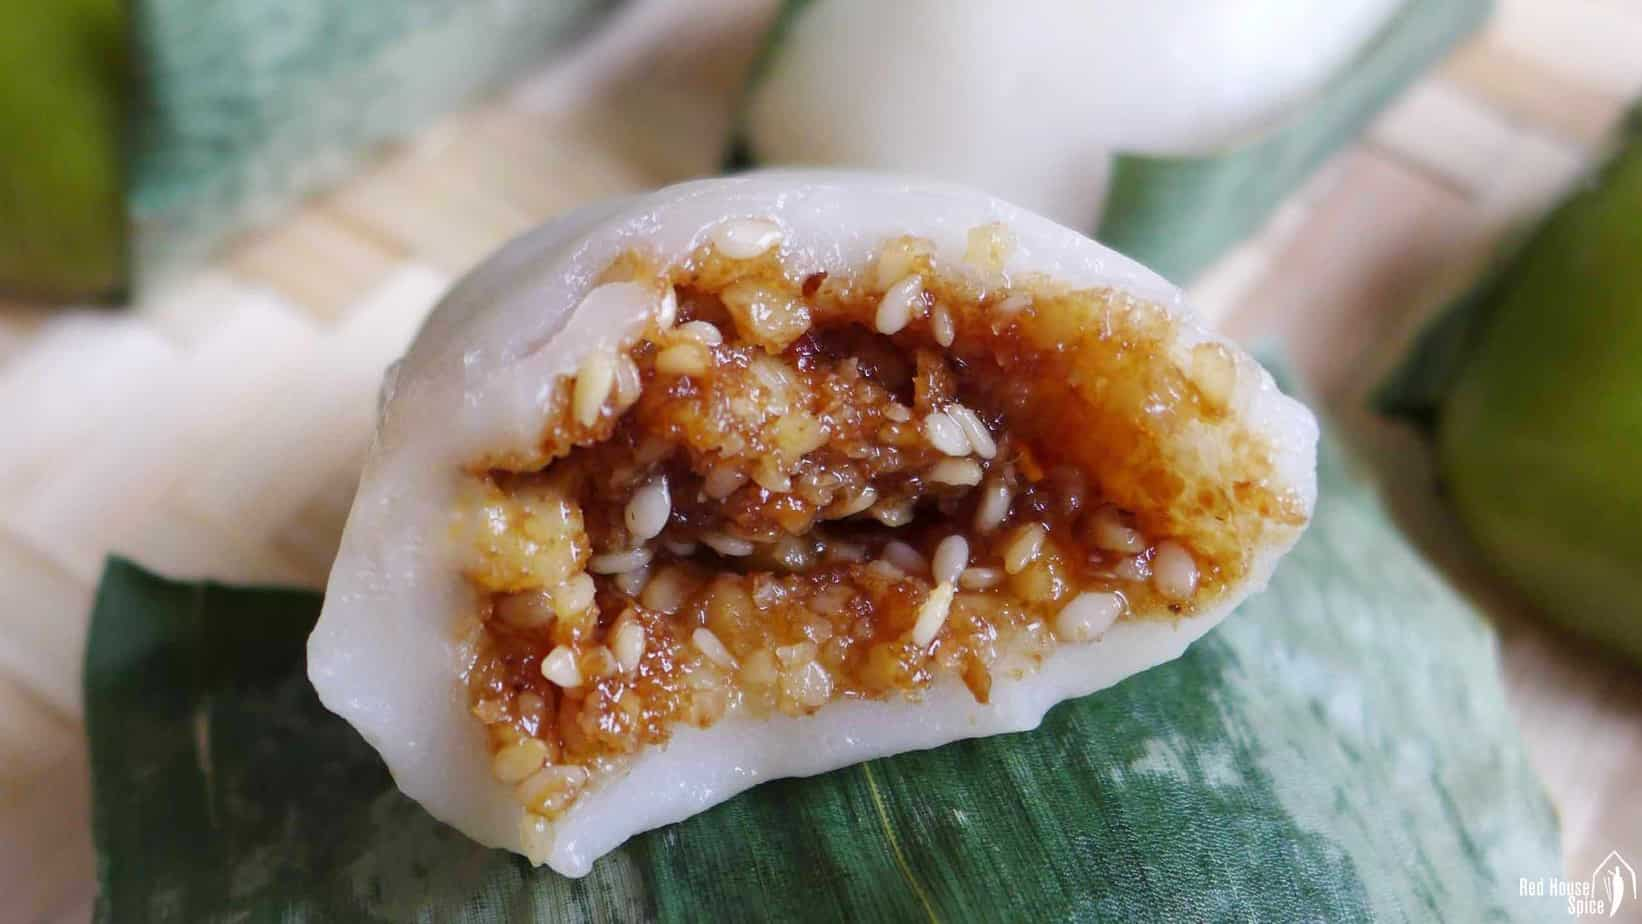 A sticky rice cake filled with walnuts & sesame seeds